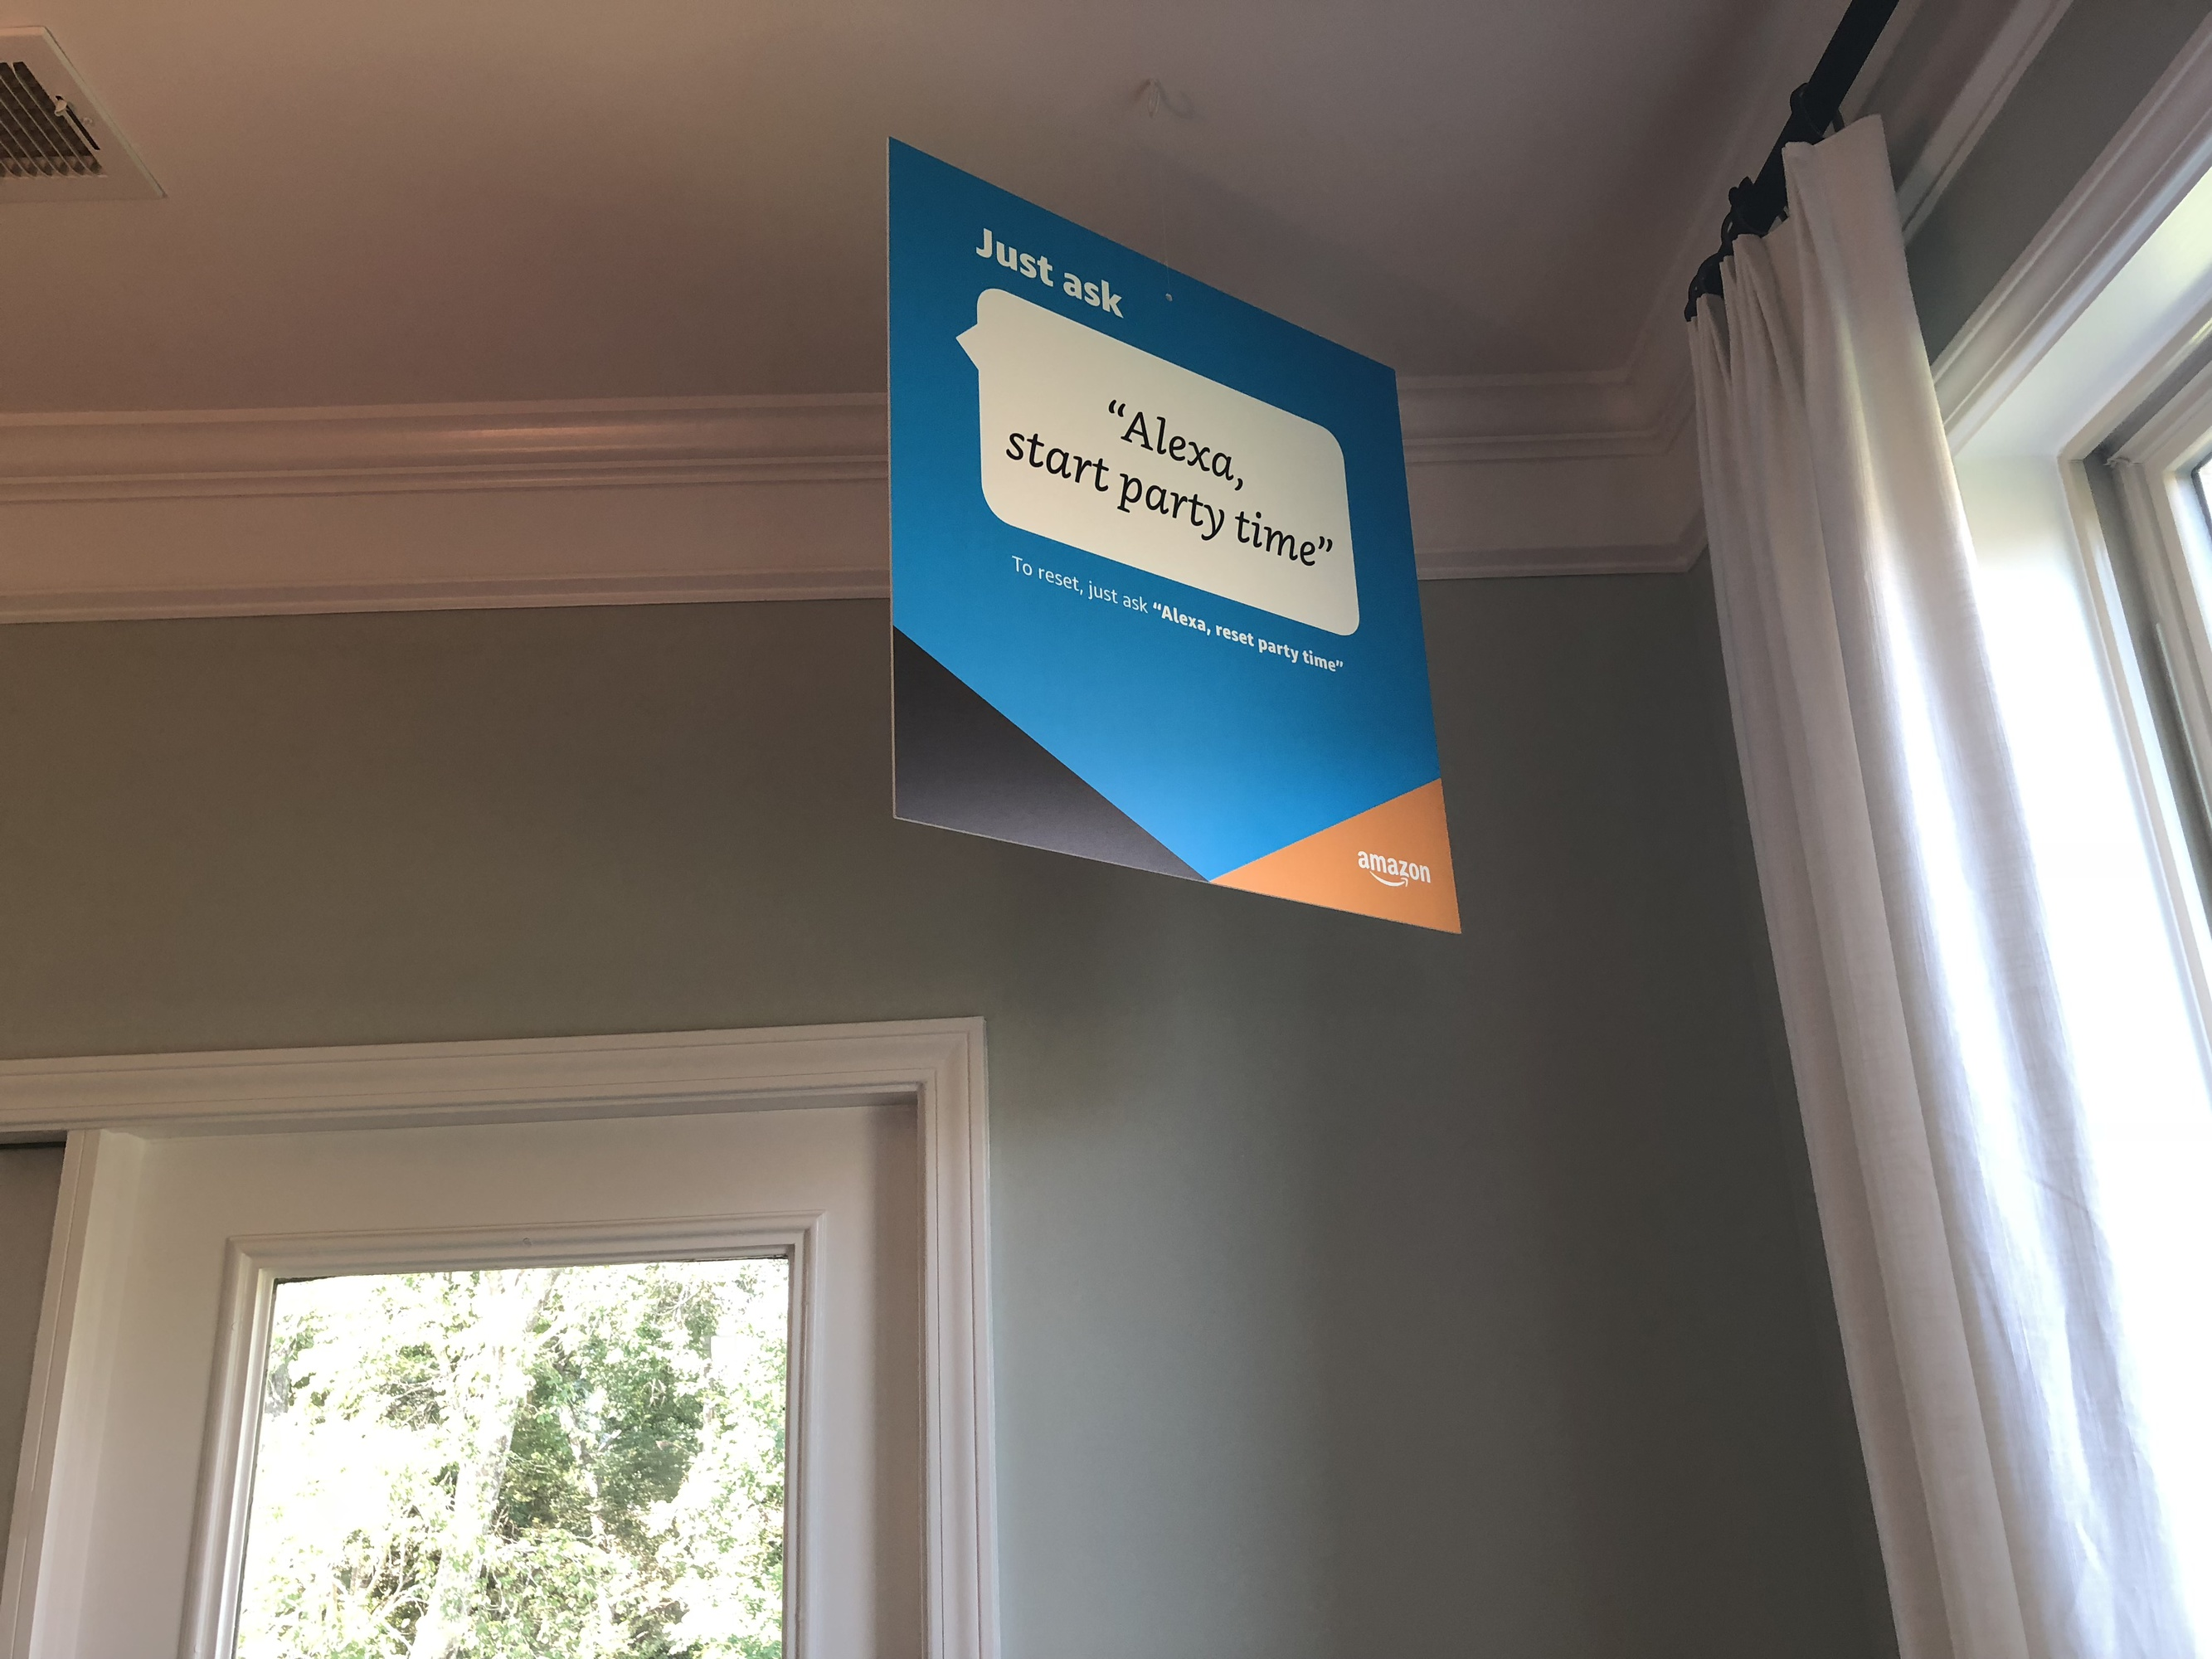 Lennar Amazon party time sign